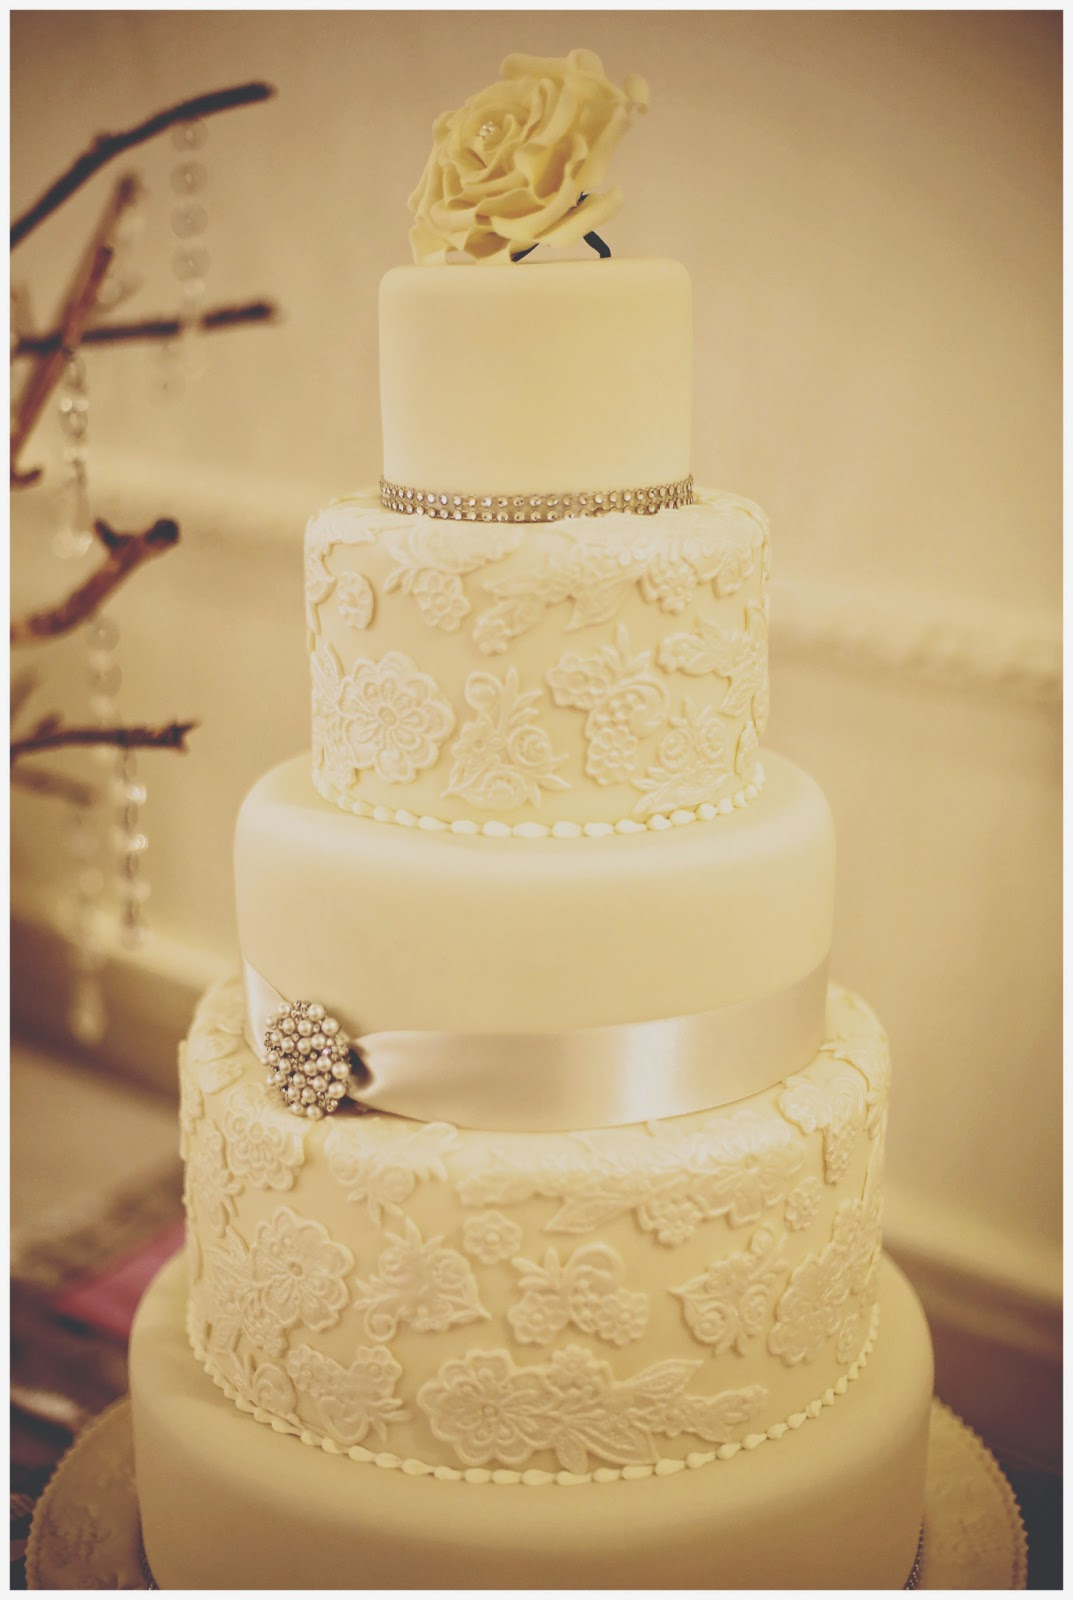 Olivia Whitbread-Roberts Photography: James and Emily get married at ...